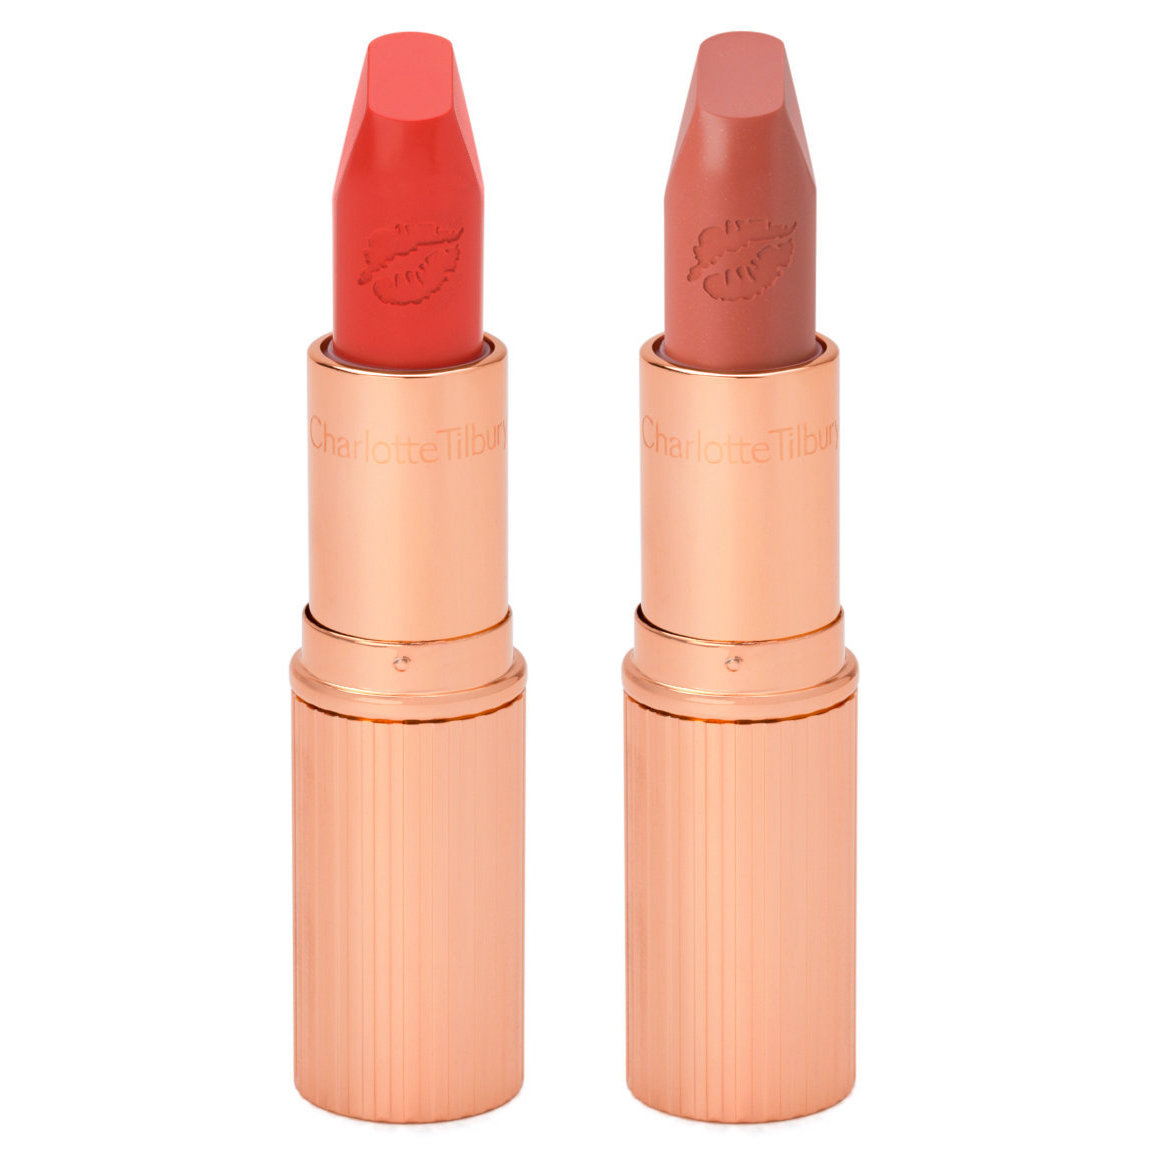 Save 30% on Hot Lips in Hot Emily and Super Cindy